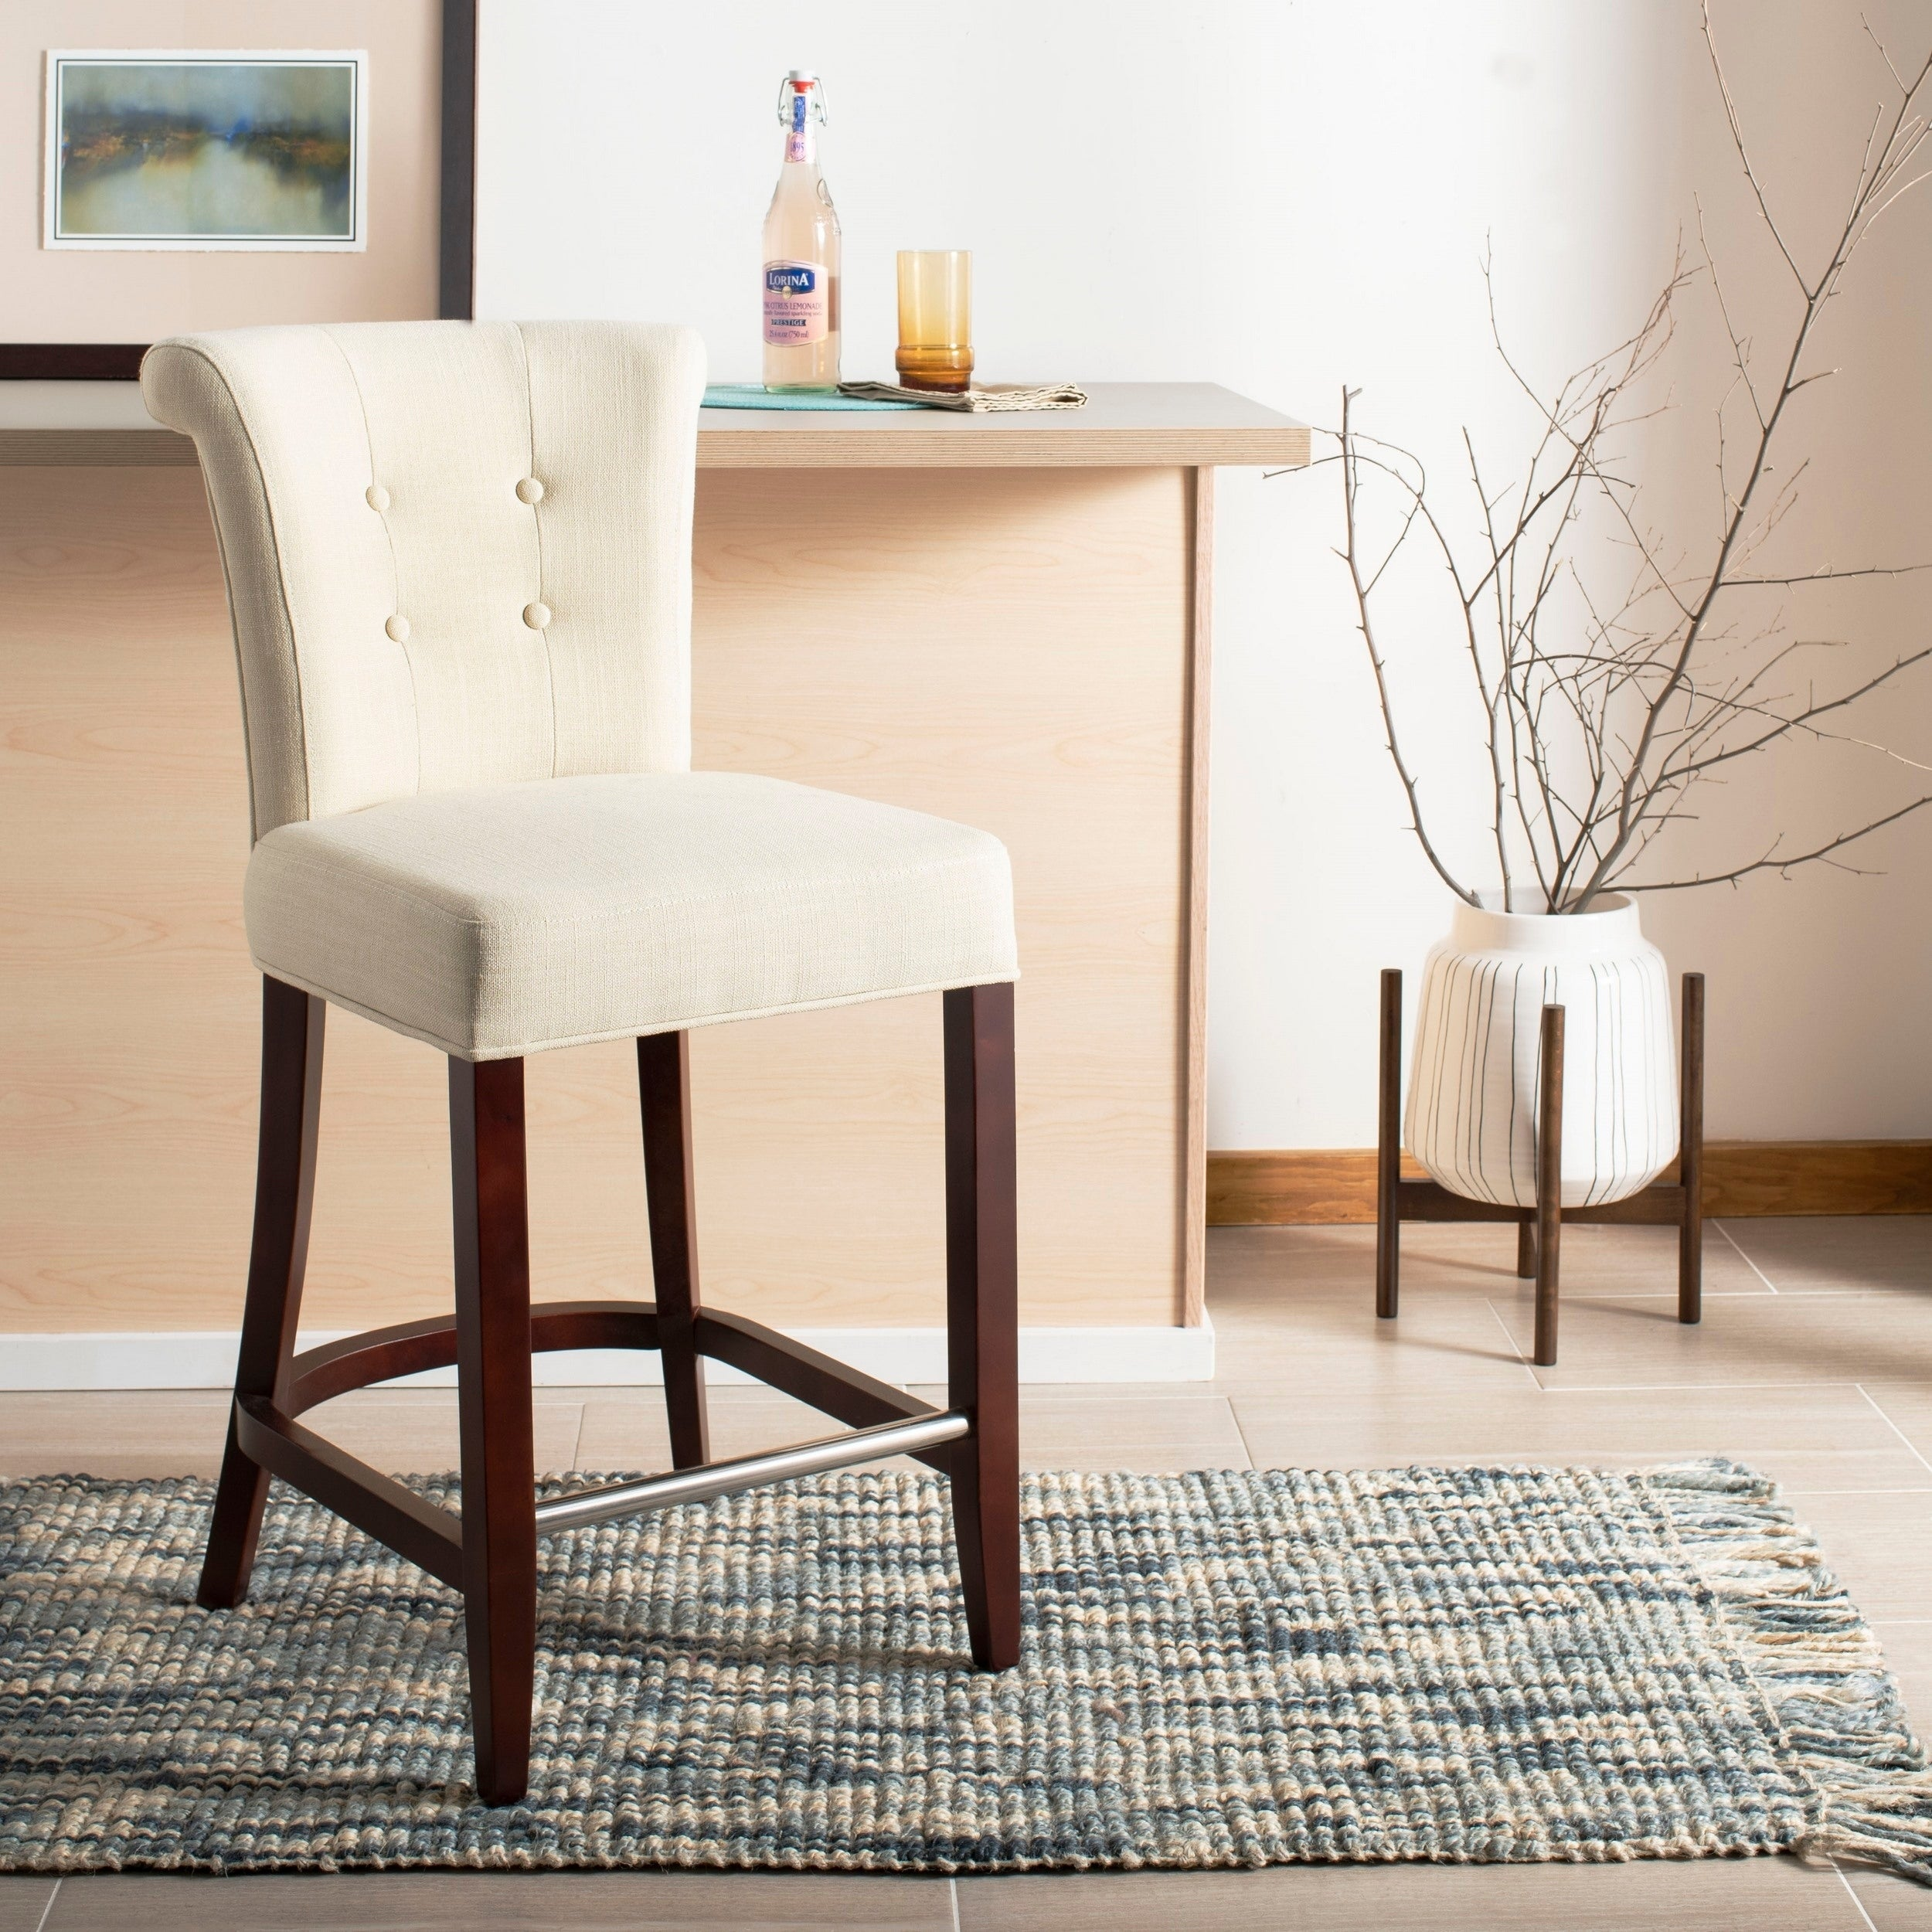 Surprising Details About Safavieh 26 Inch Parker Curved Back Counter Stool 19 6 X 24 2 X 39 8 Lamtechconsult Wood Chair Design Ideas Lamtechconsultcom